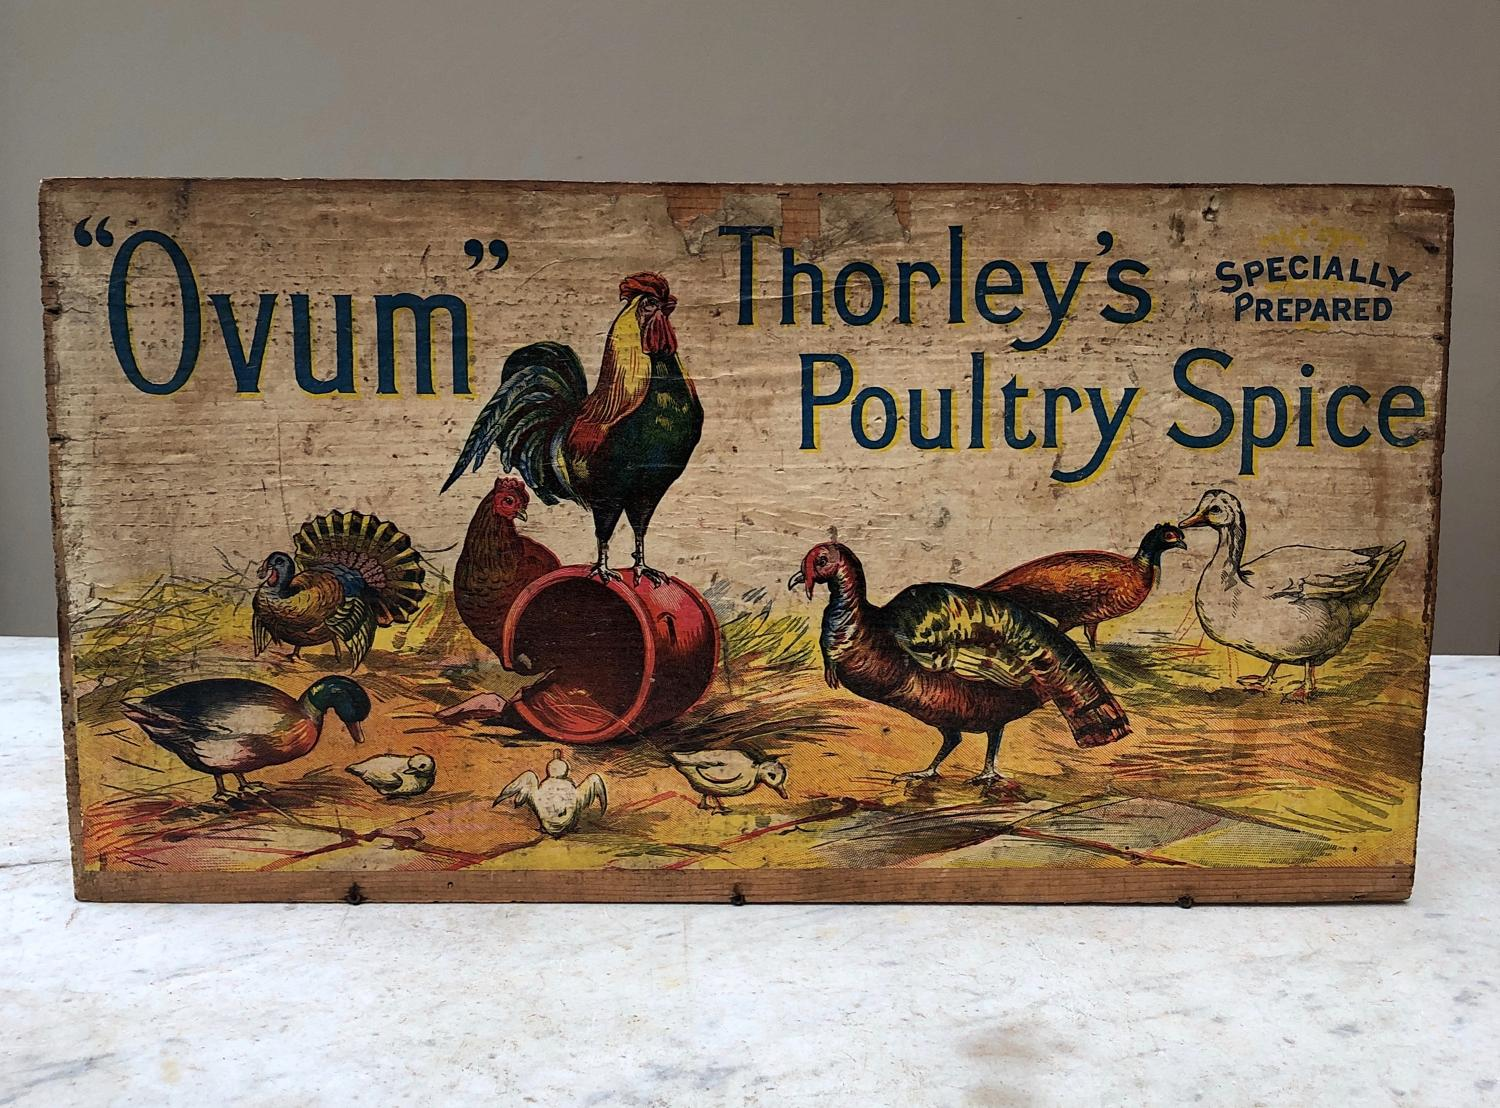 Thorleys Ovum Poultry Spice Advertising Board